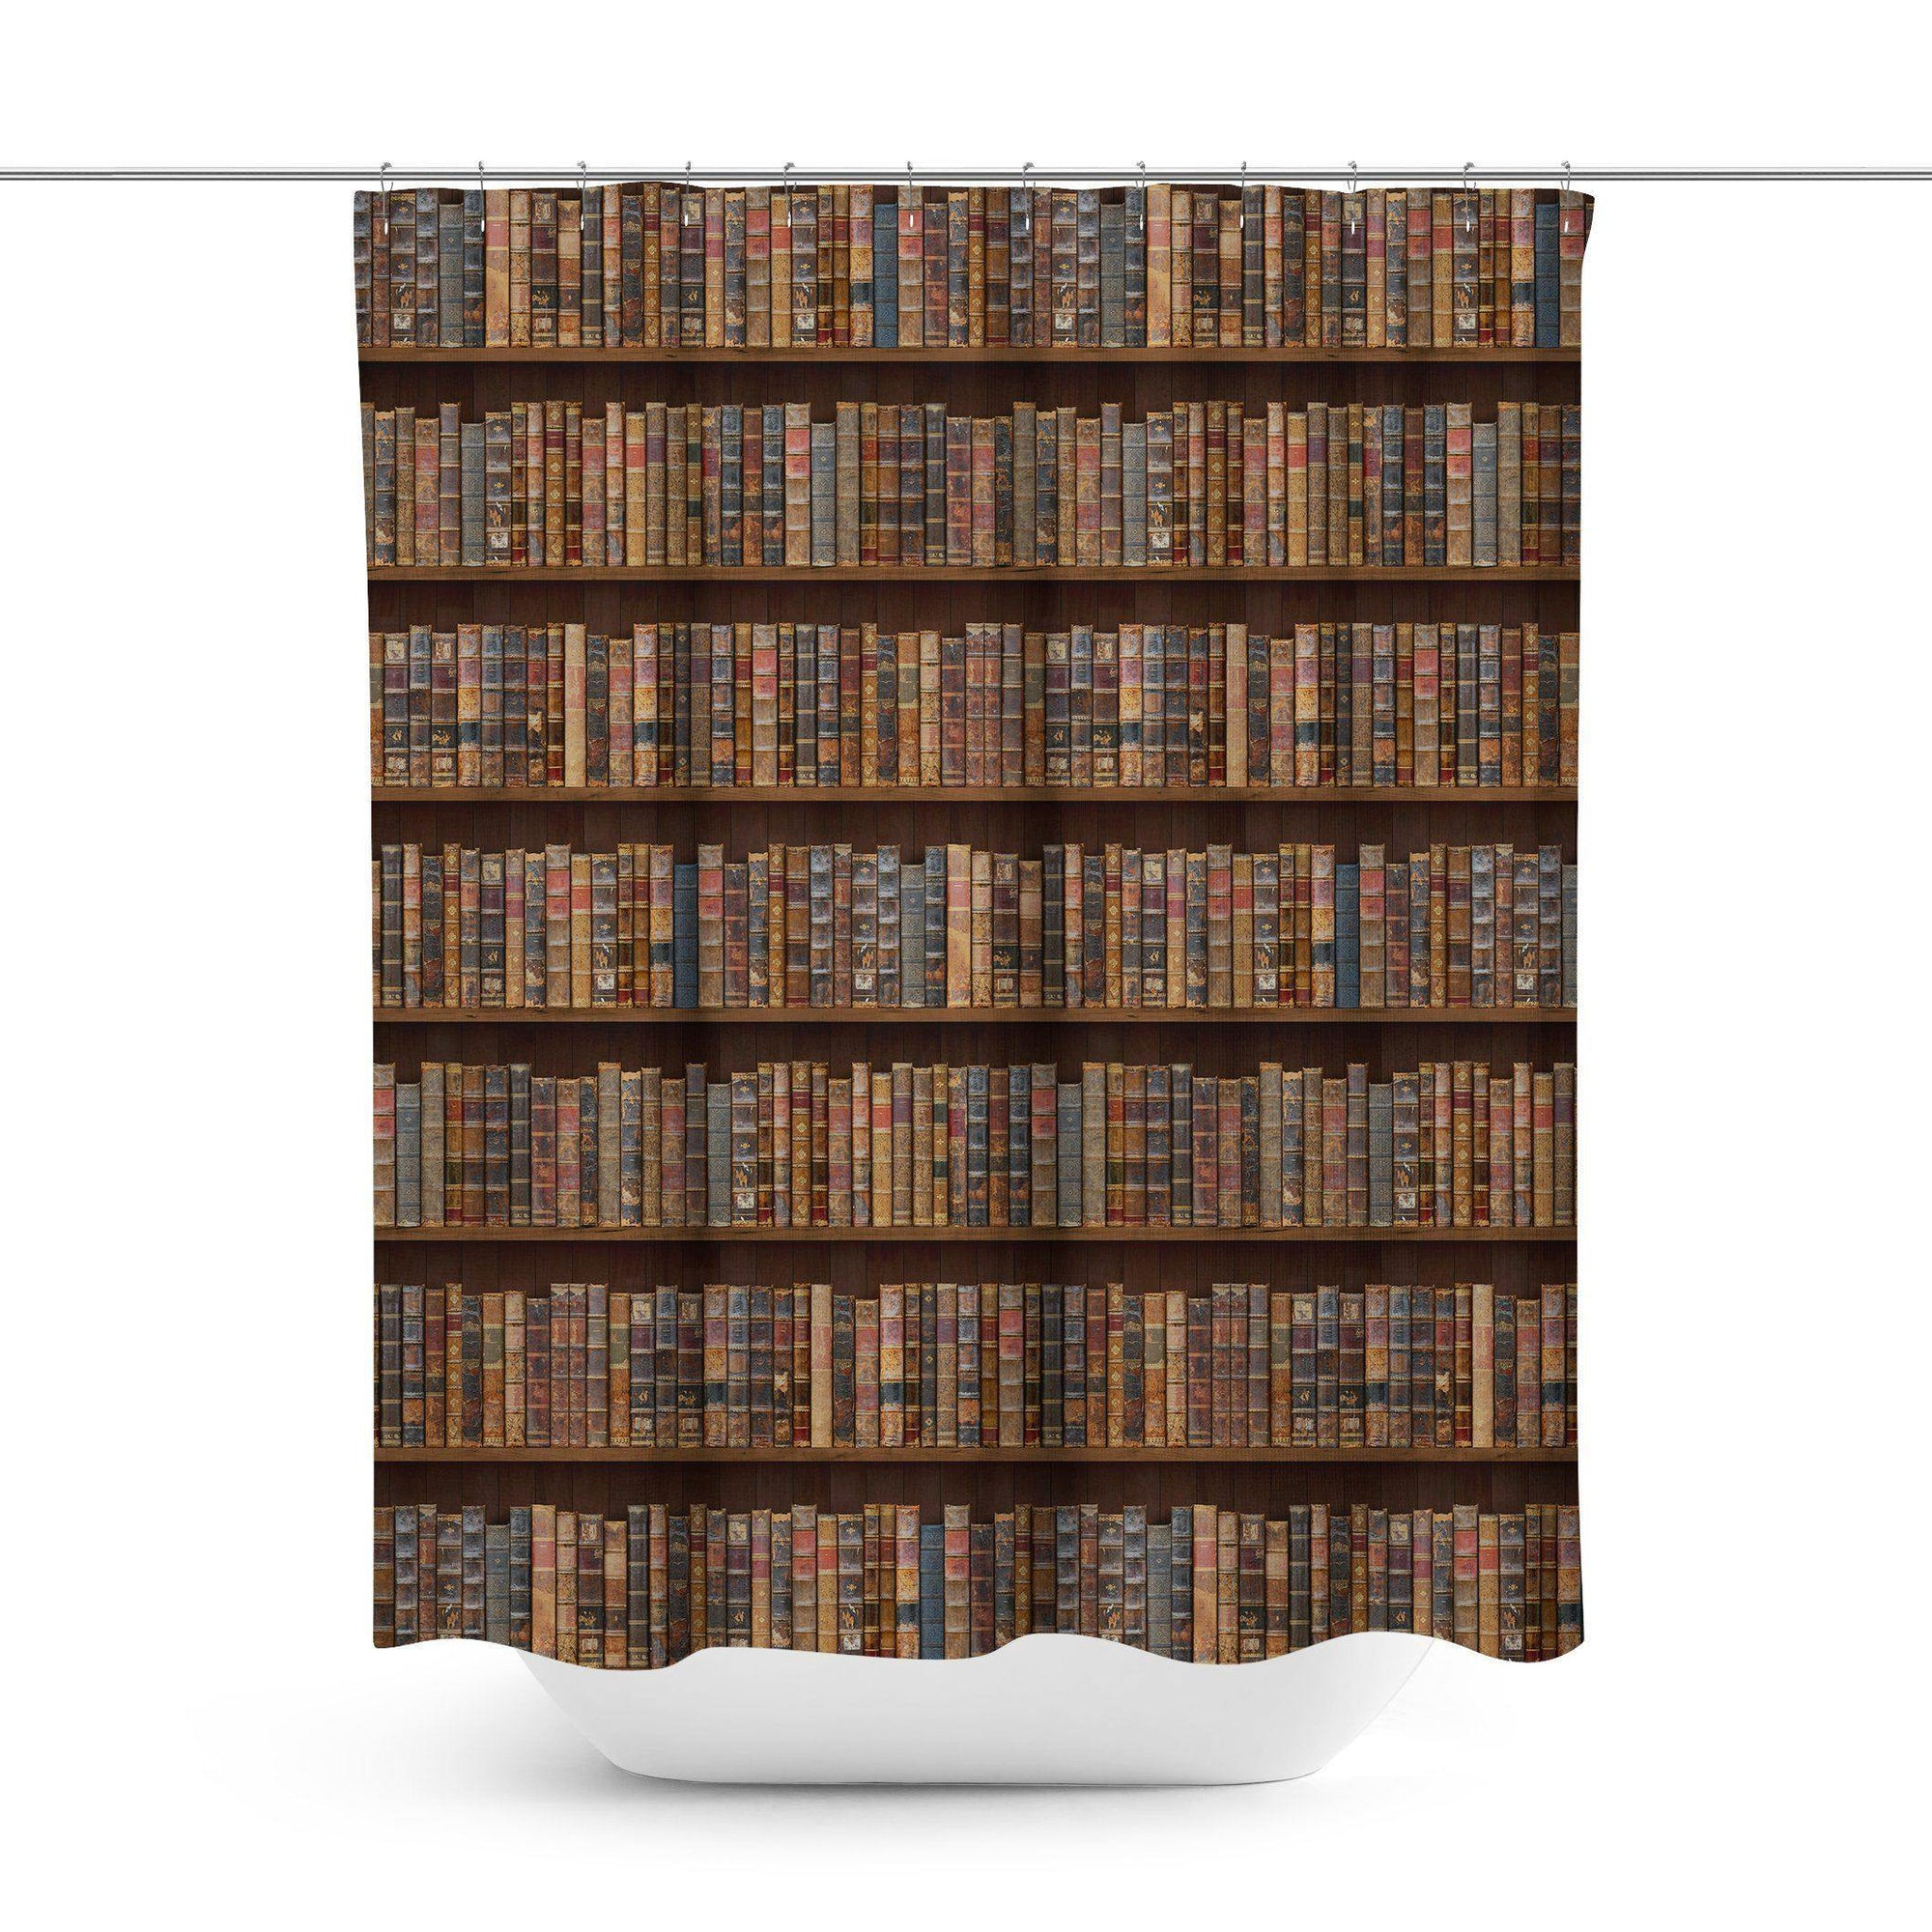 Bookcase Shower Curtain - Shower Curtains - W.FRANCIS